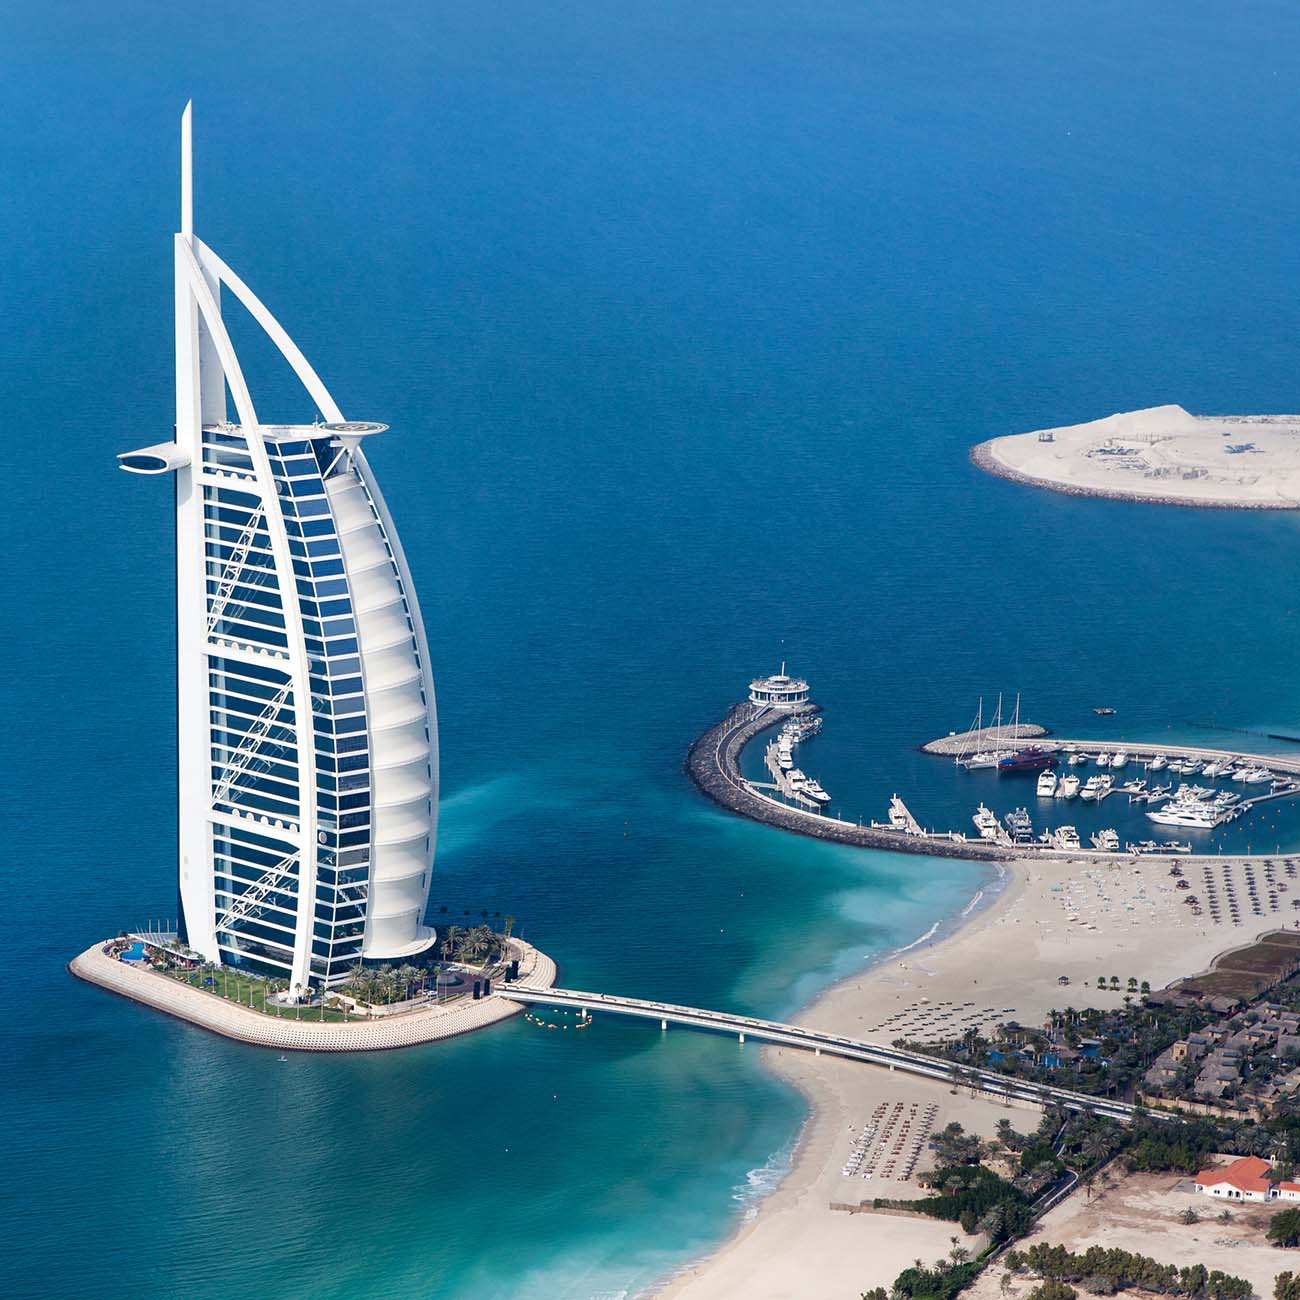 Aerial photo of Dubai, UAE. Burj Al Arab